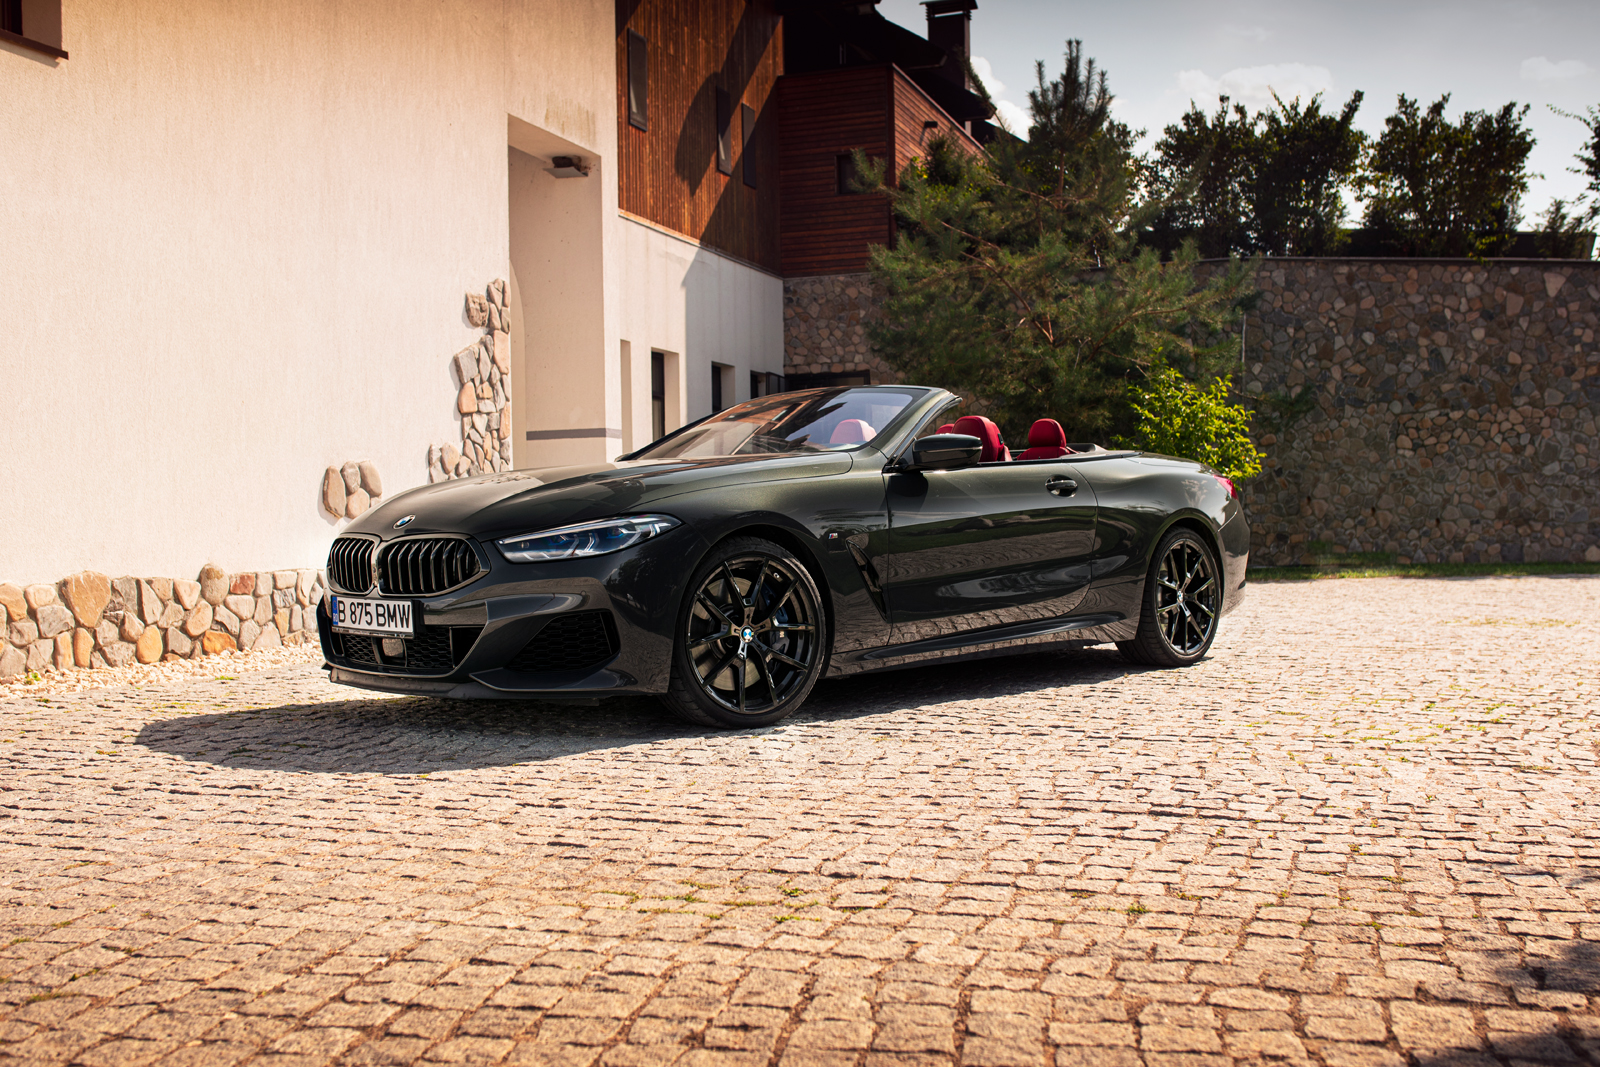 A fantastic photoshoot with the new BMW M850i Convertible